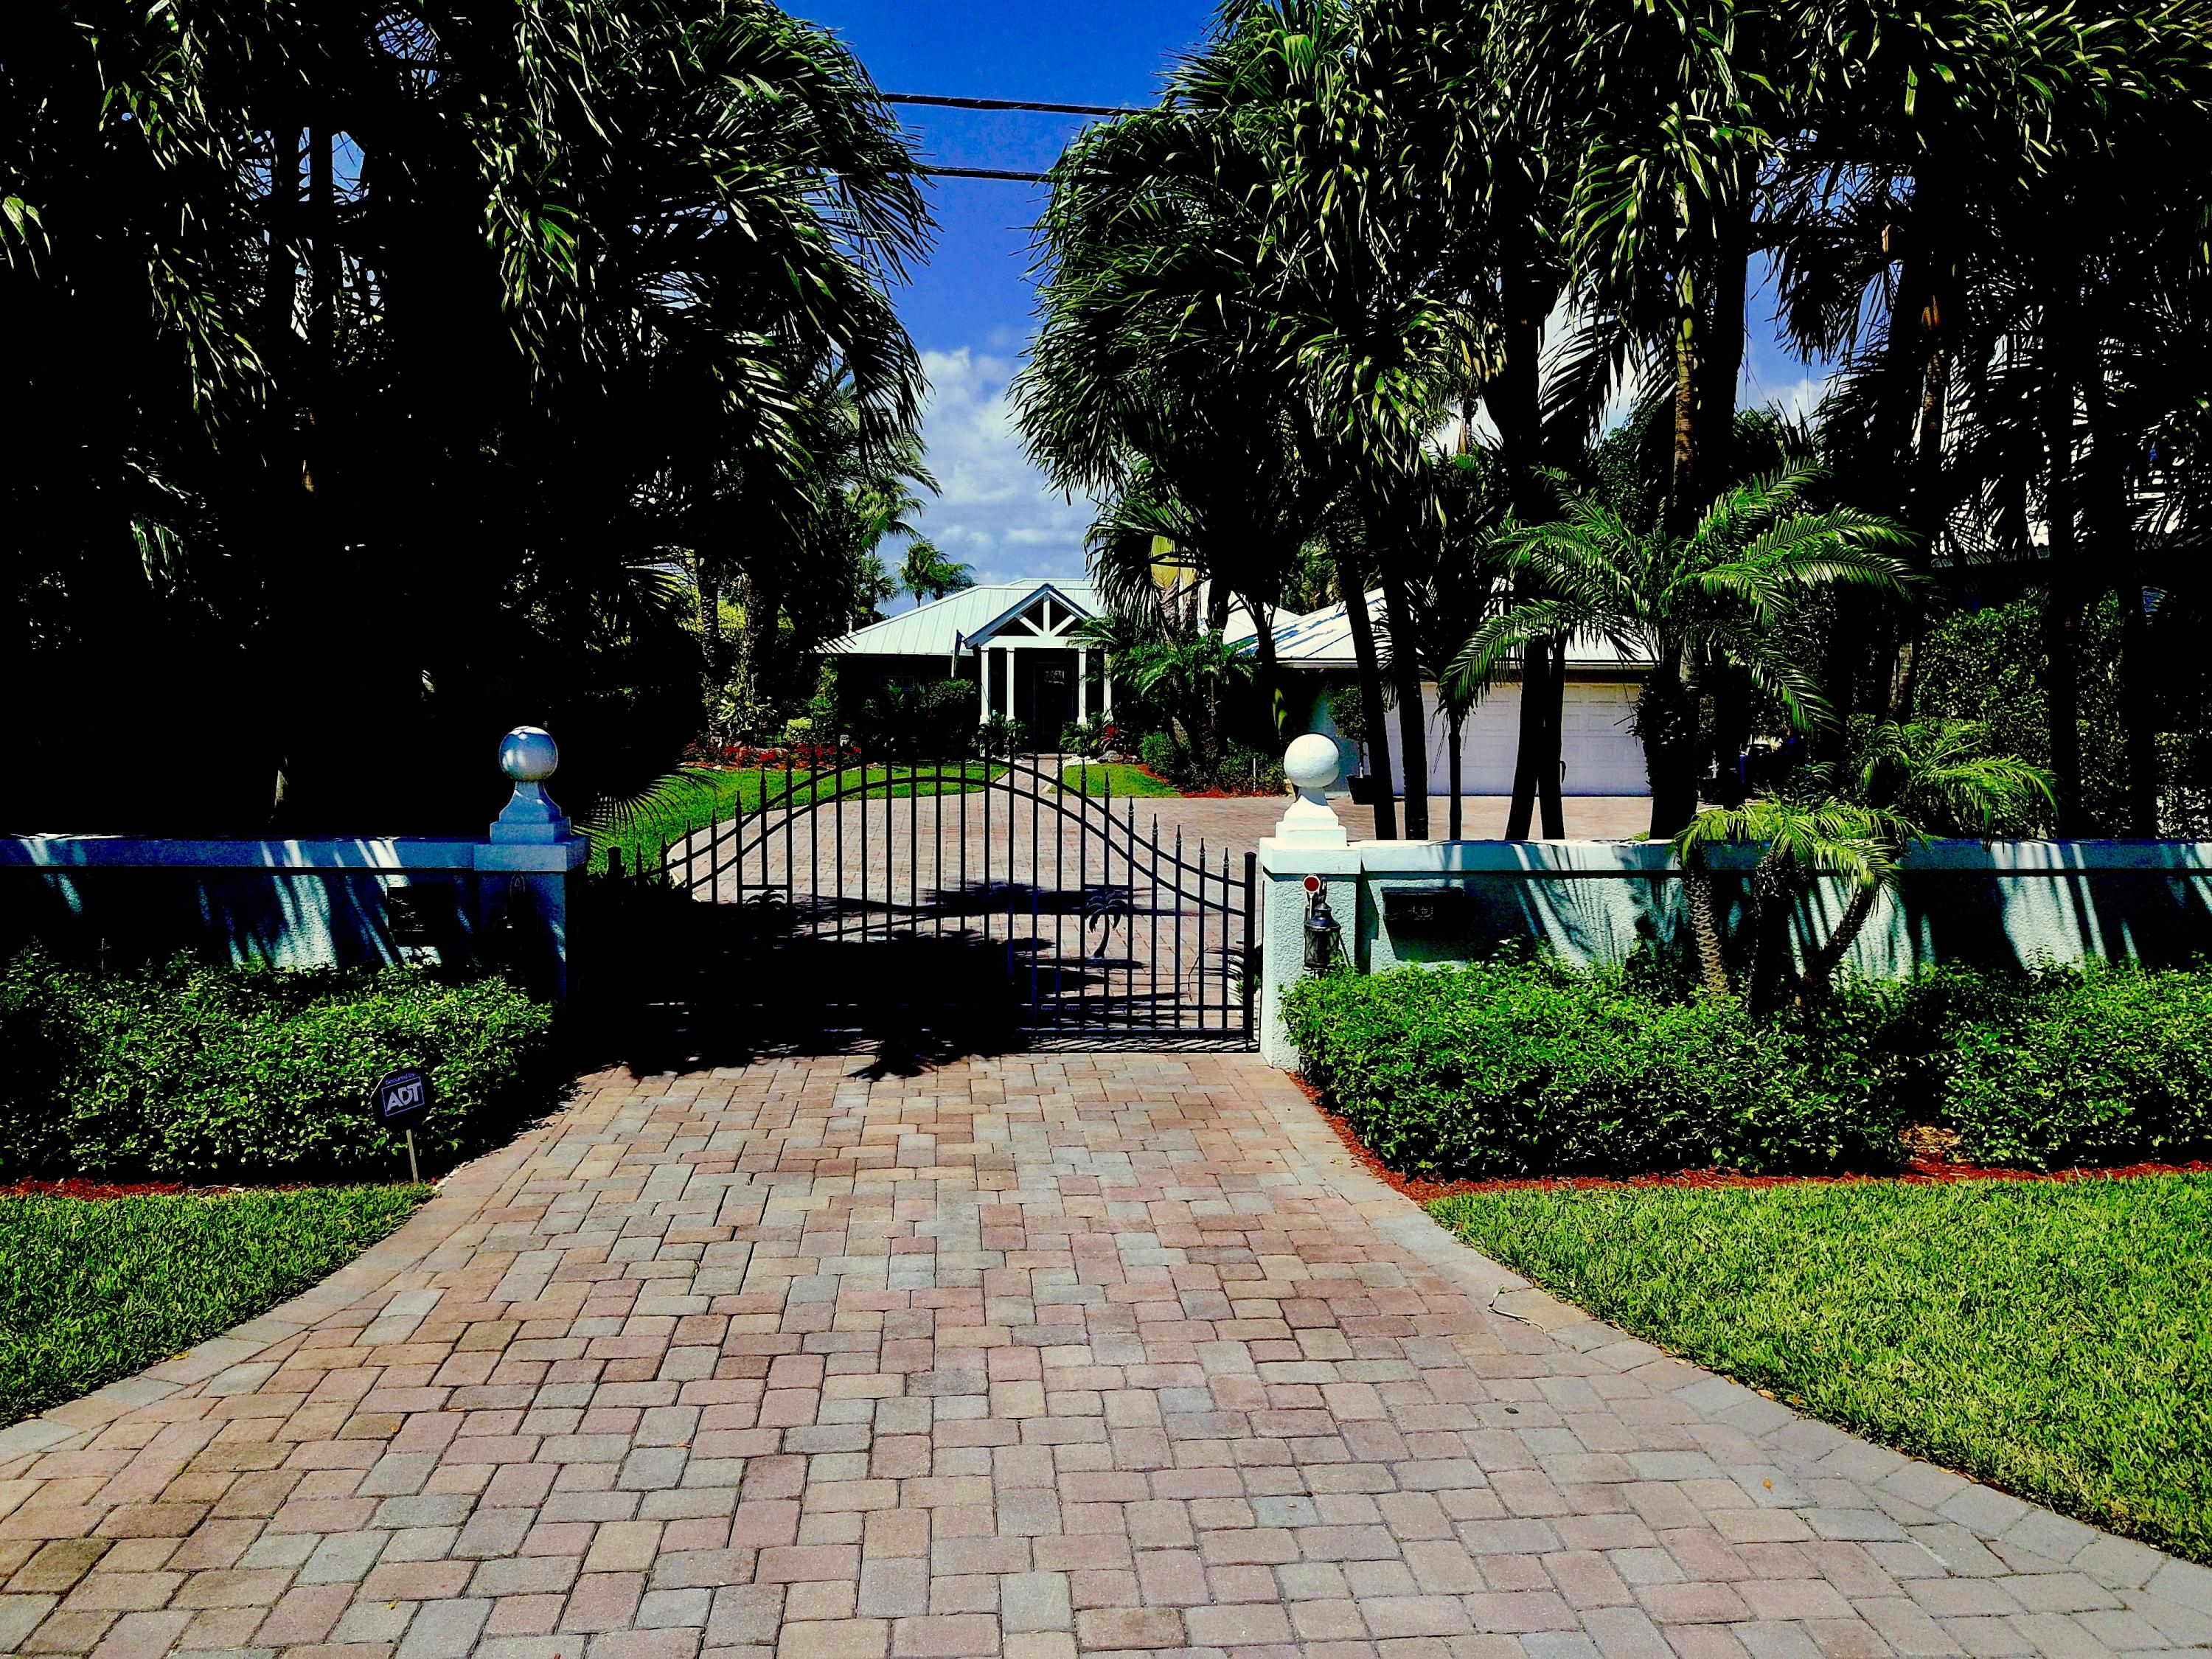 701 Atlantic Drive, Lantana, Florida 33462, 4 Bedrooms Bedrooms, ,4 BathroomsBathrooms,Single Family,For Sale,Atlantic,RX-10578618